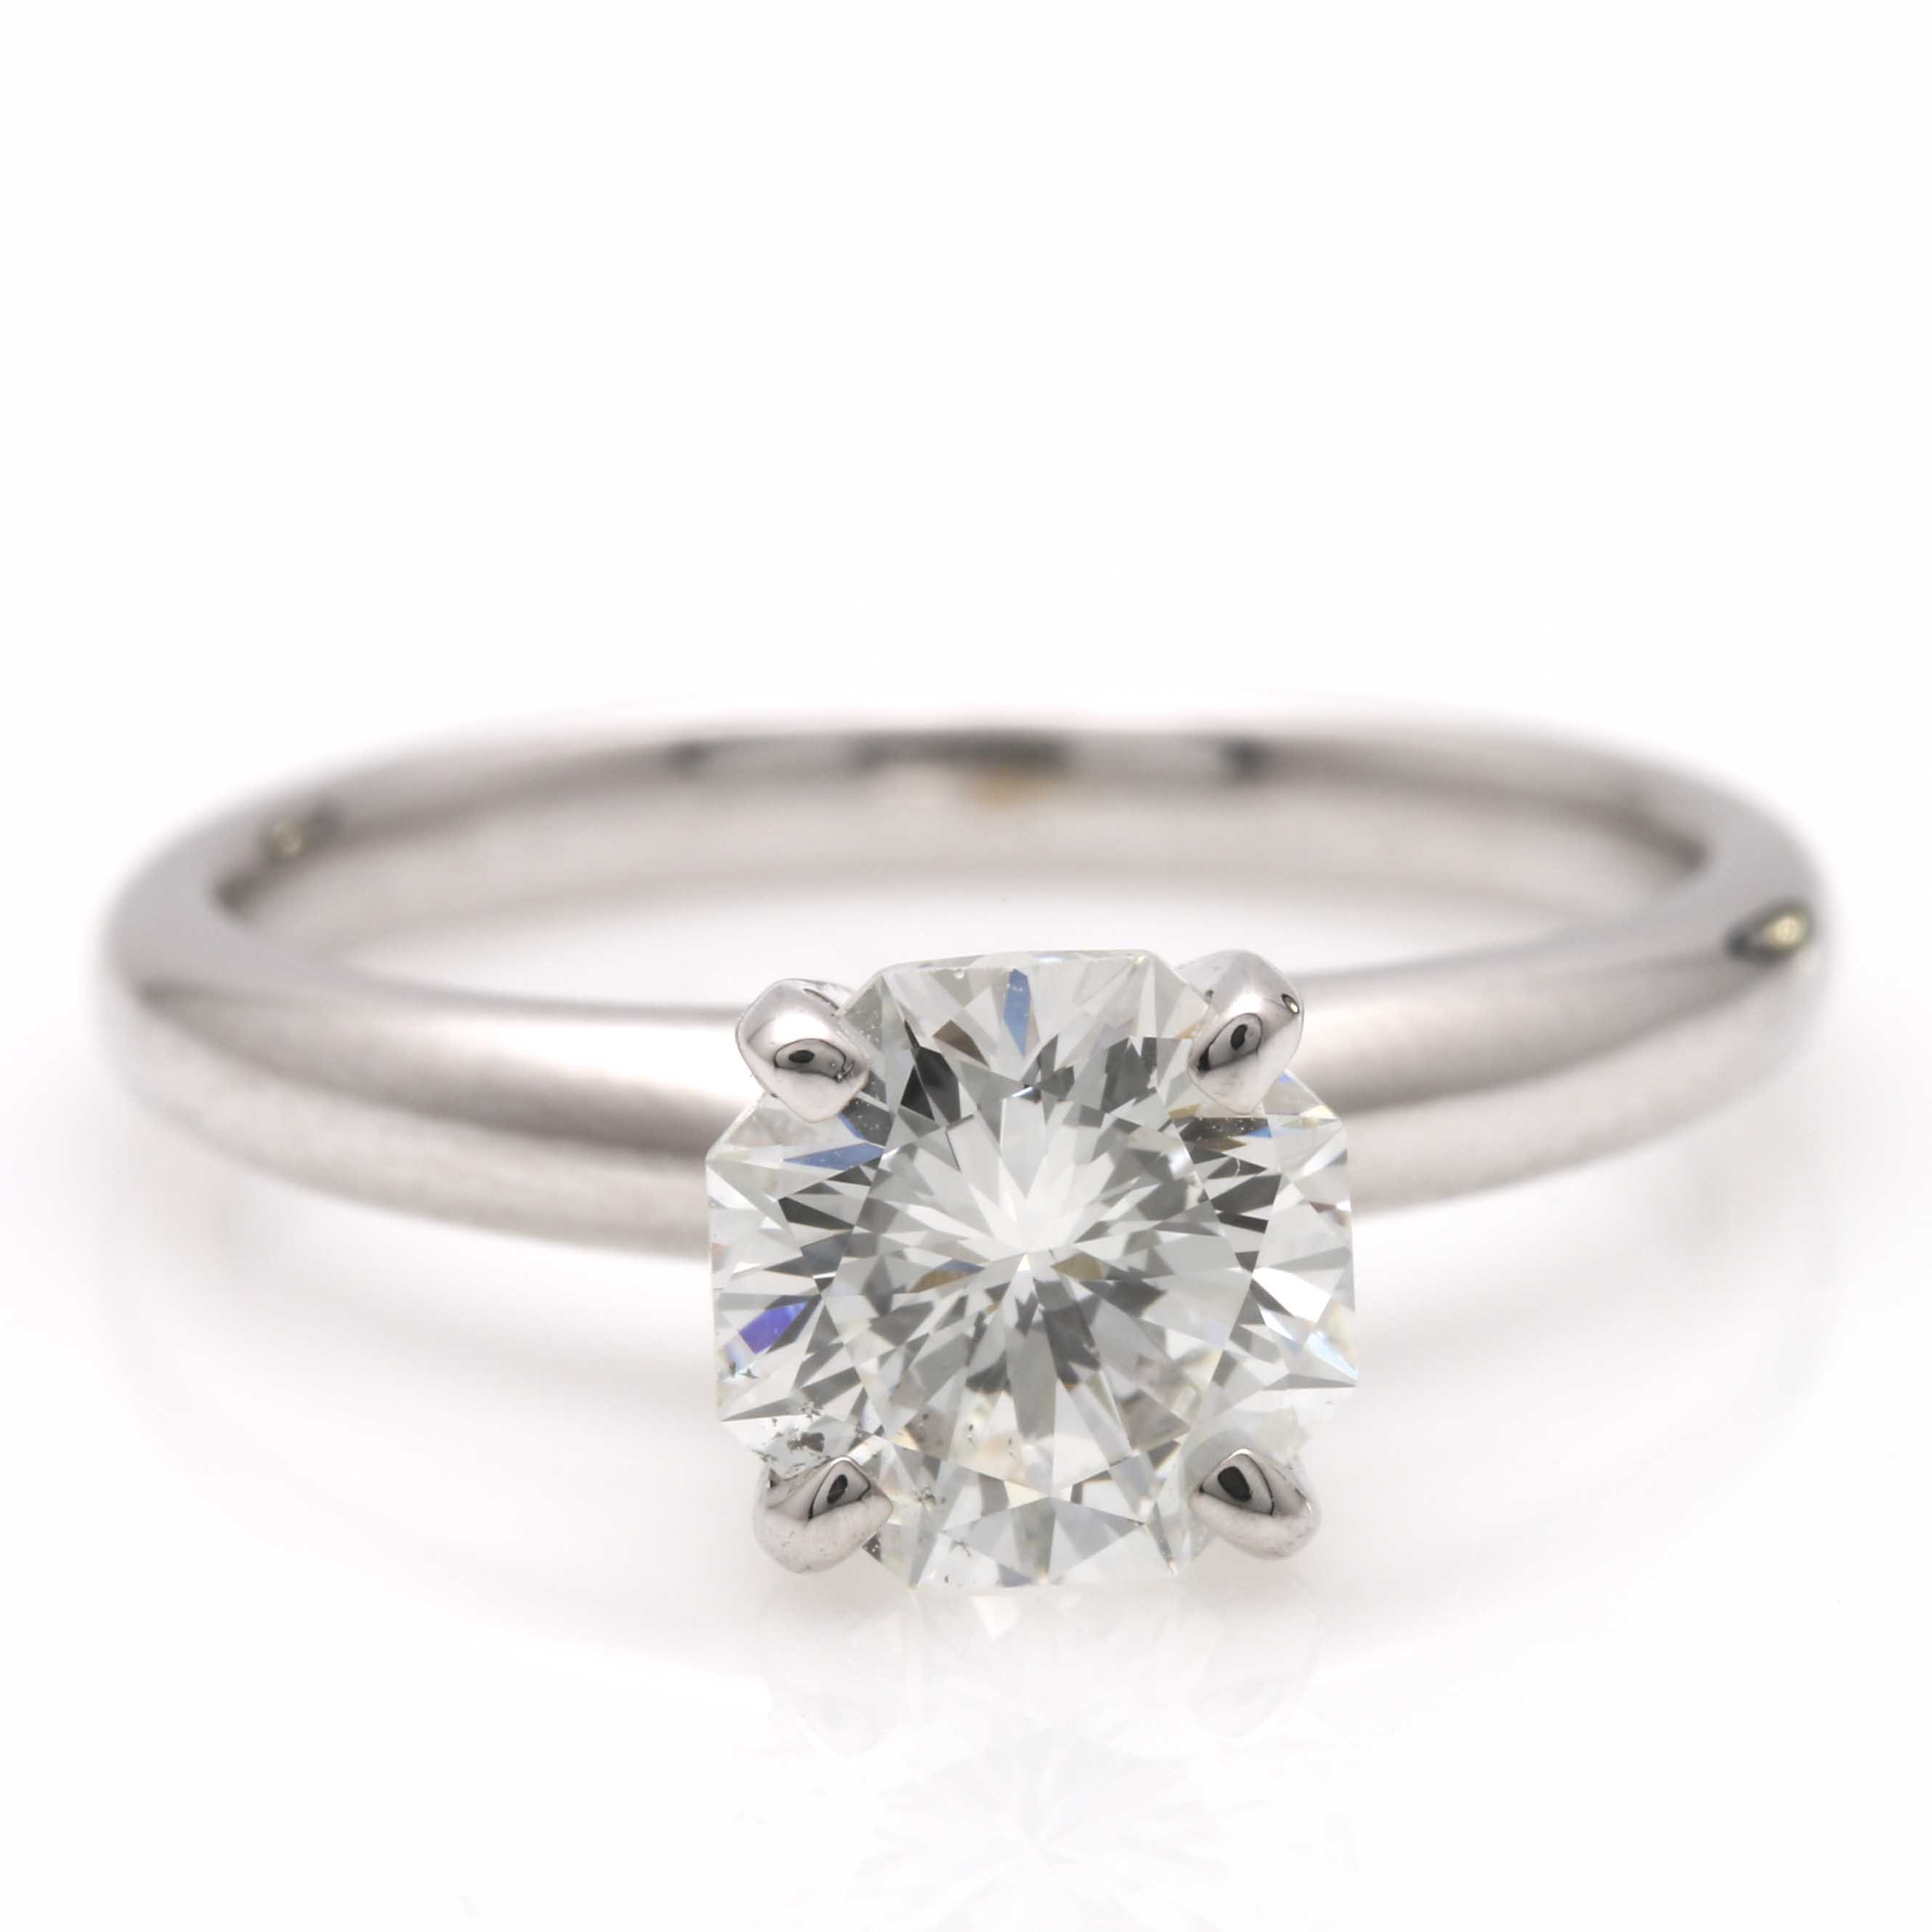 14K White Gold 1.20 CTS Diamond Solitaire Ring